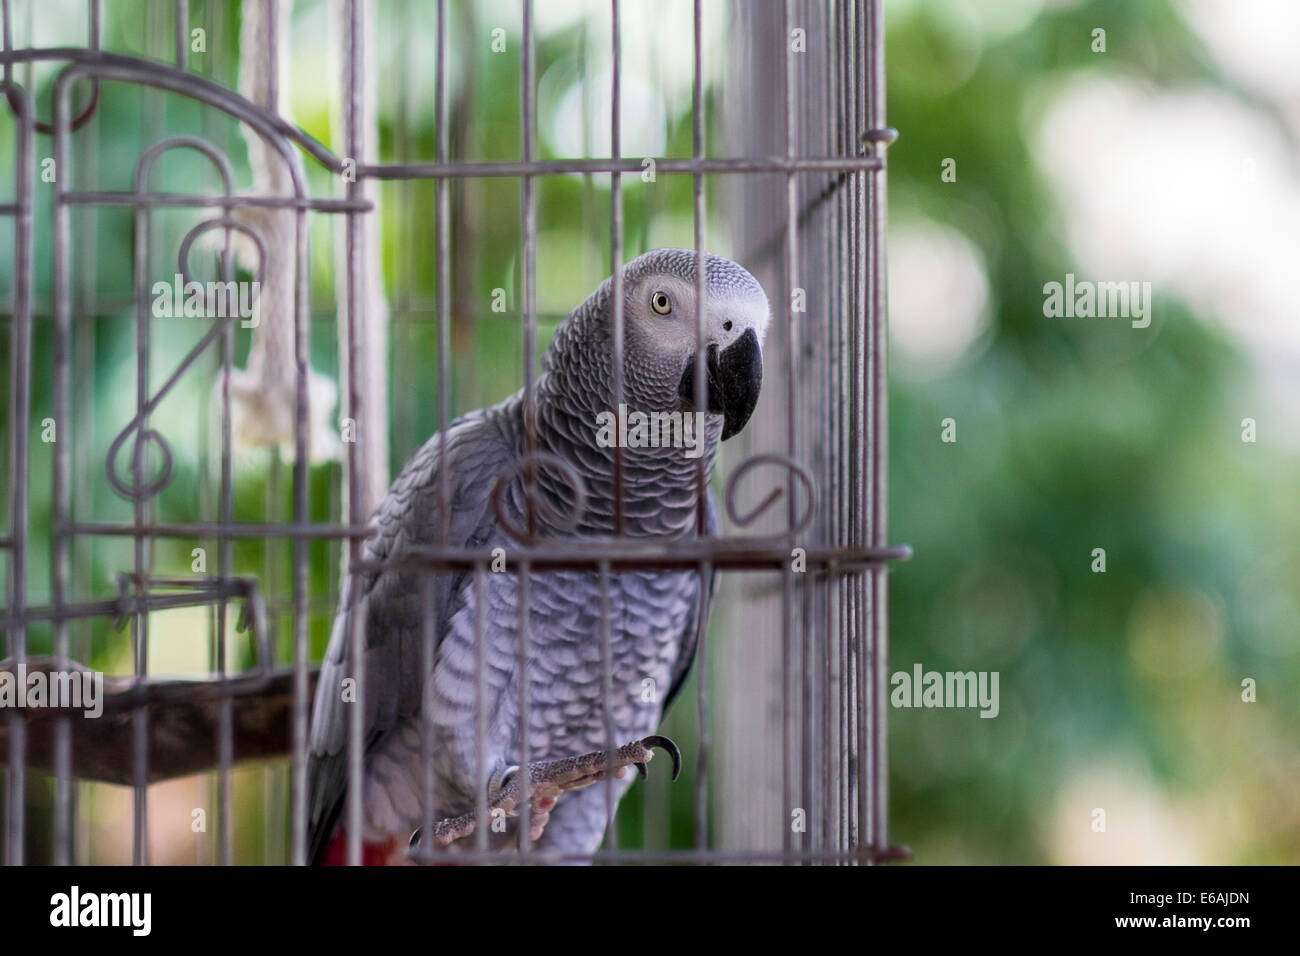 a-pet-african-grey-parrot-female-psittac